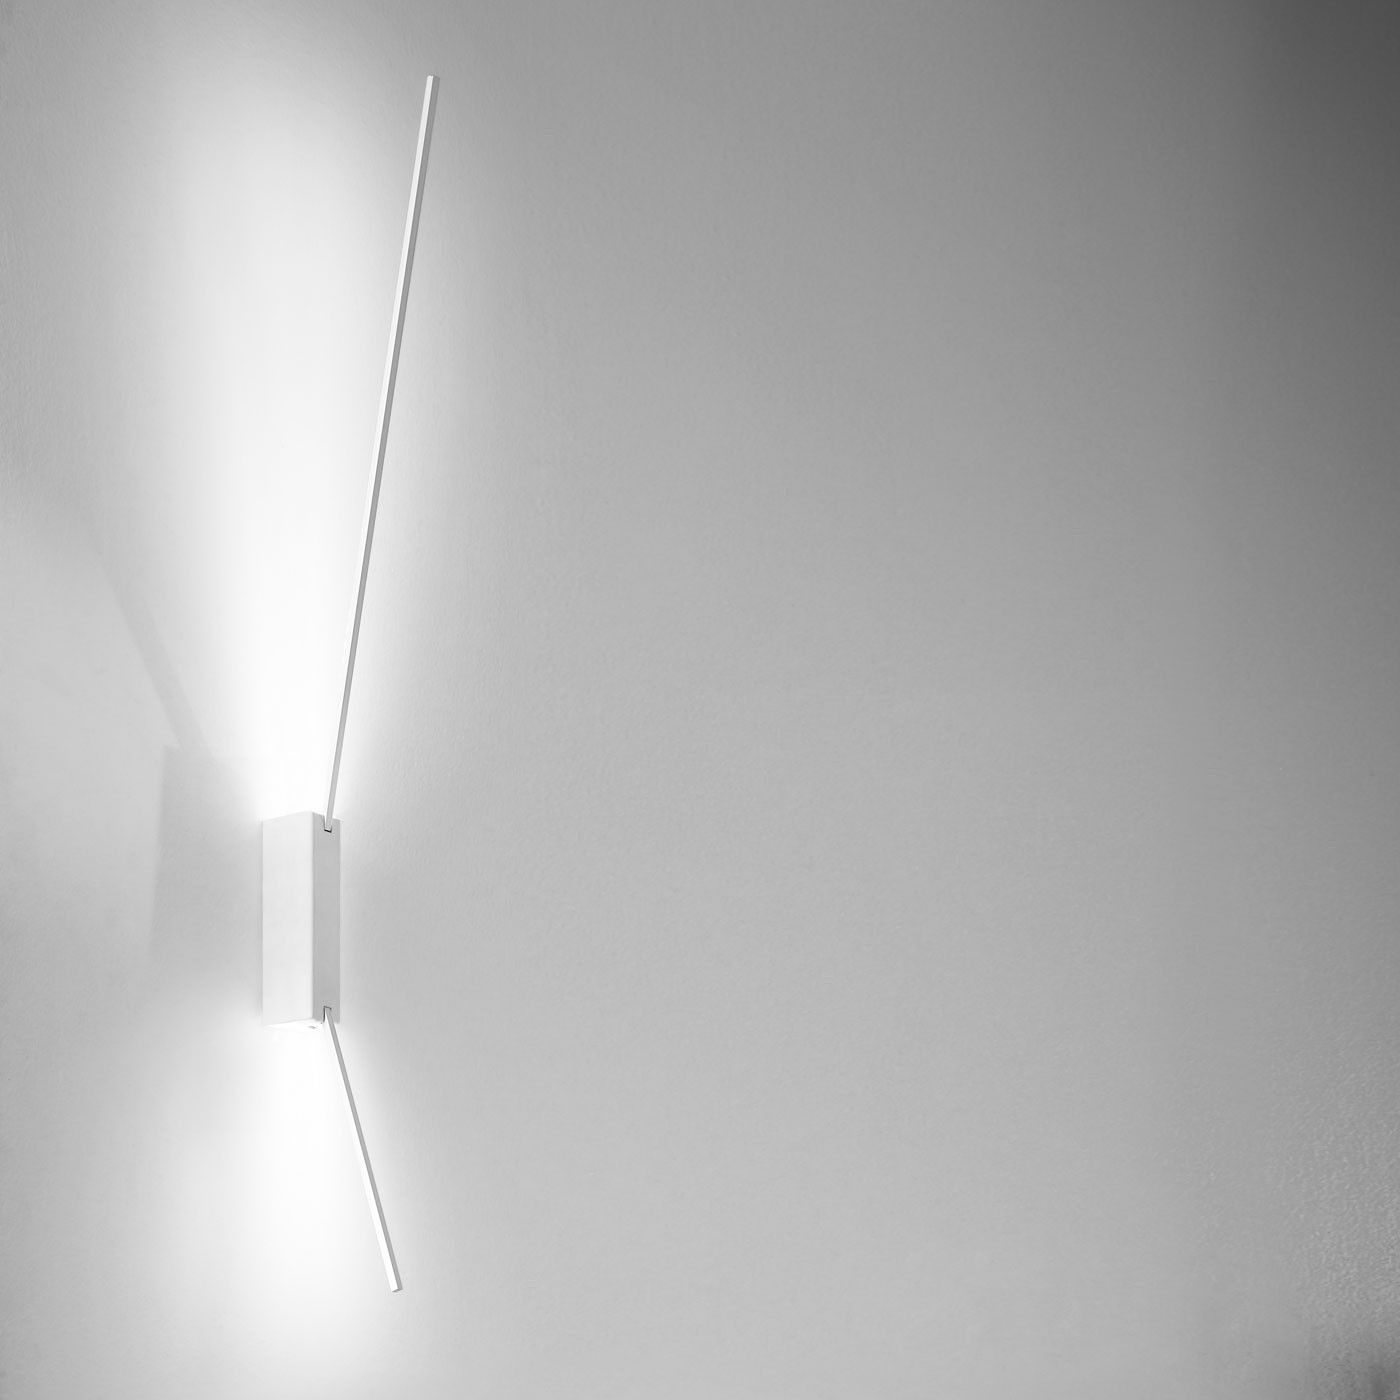 Icone Spillo 2 60 Wall And Ceiling Light